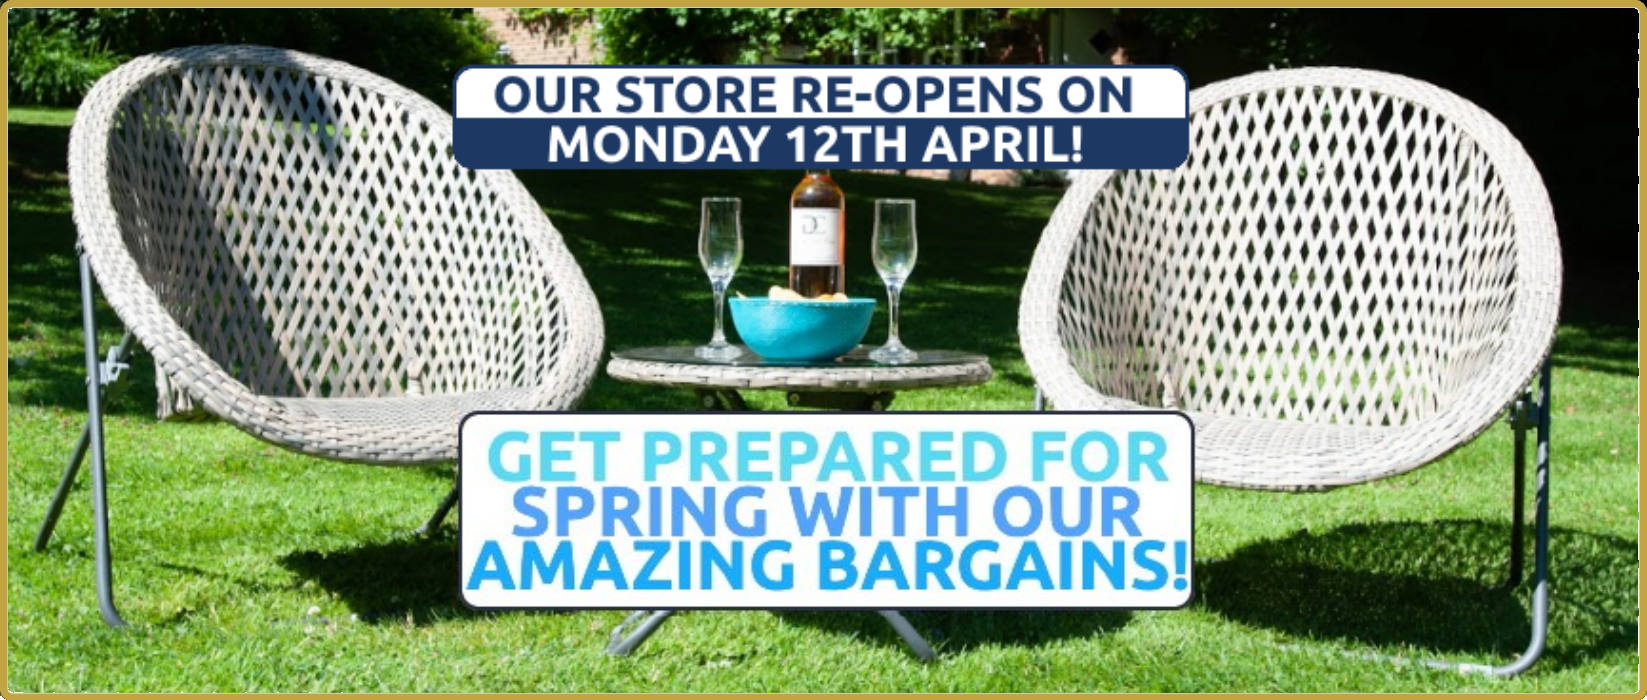 Our Store Re-Opens Monday 12th April!